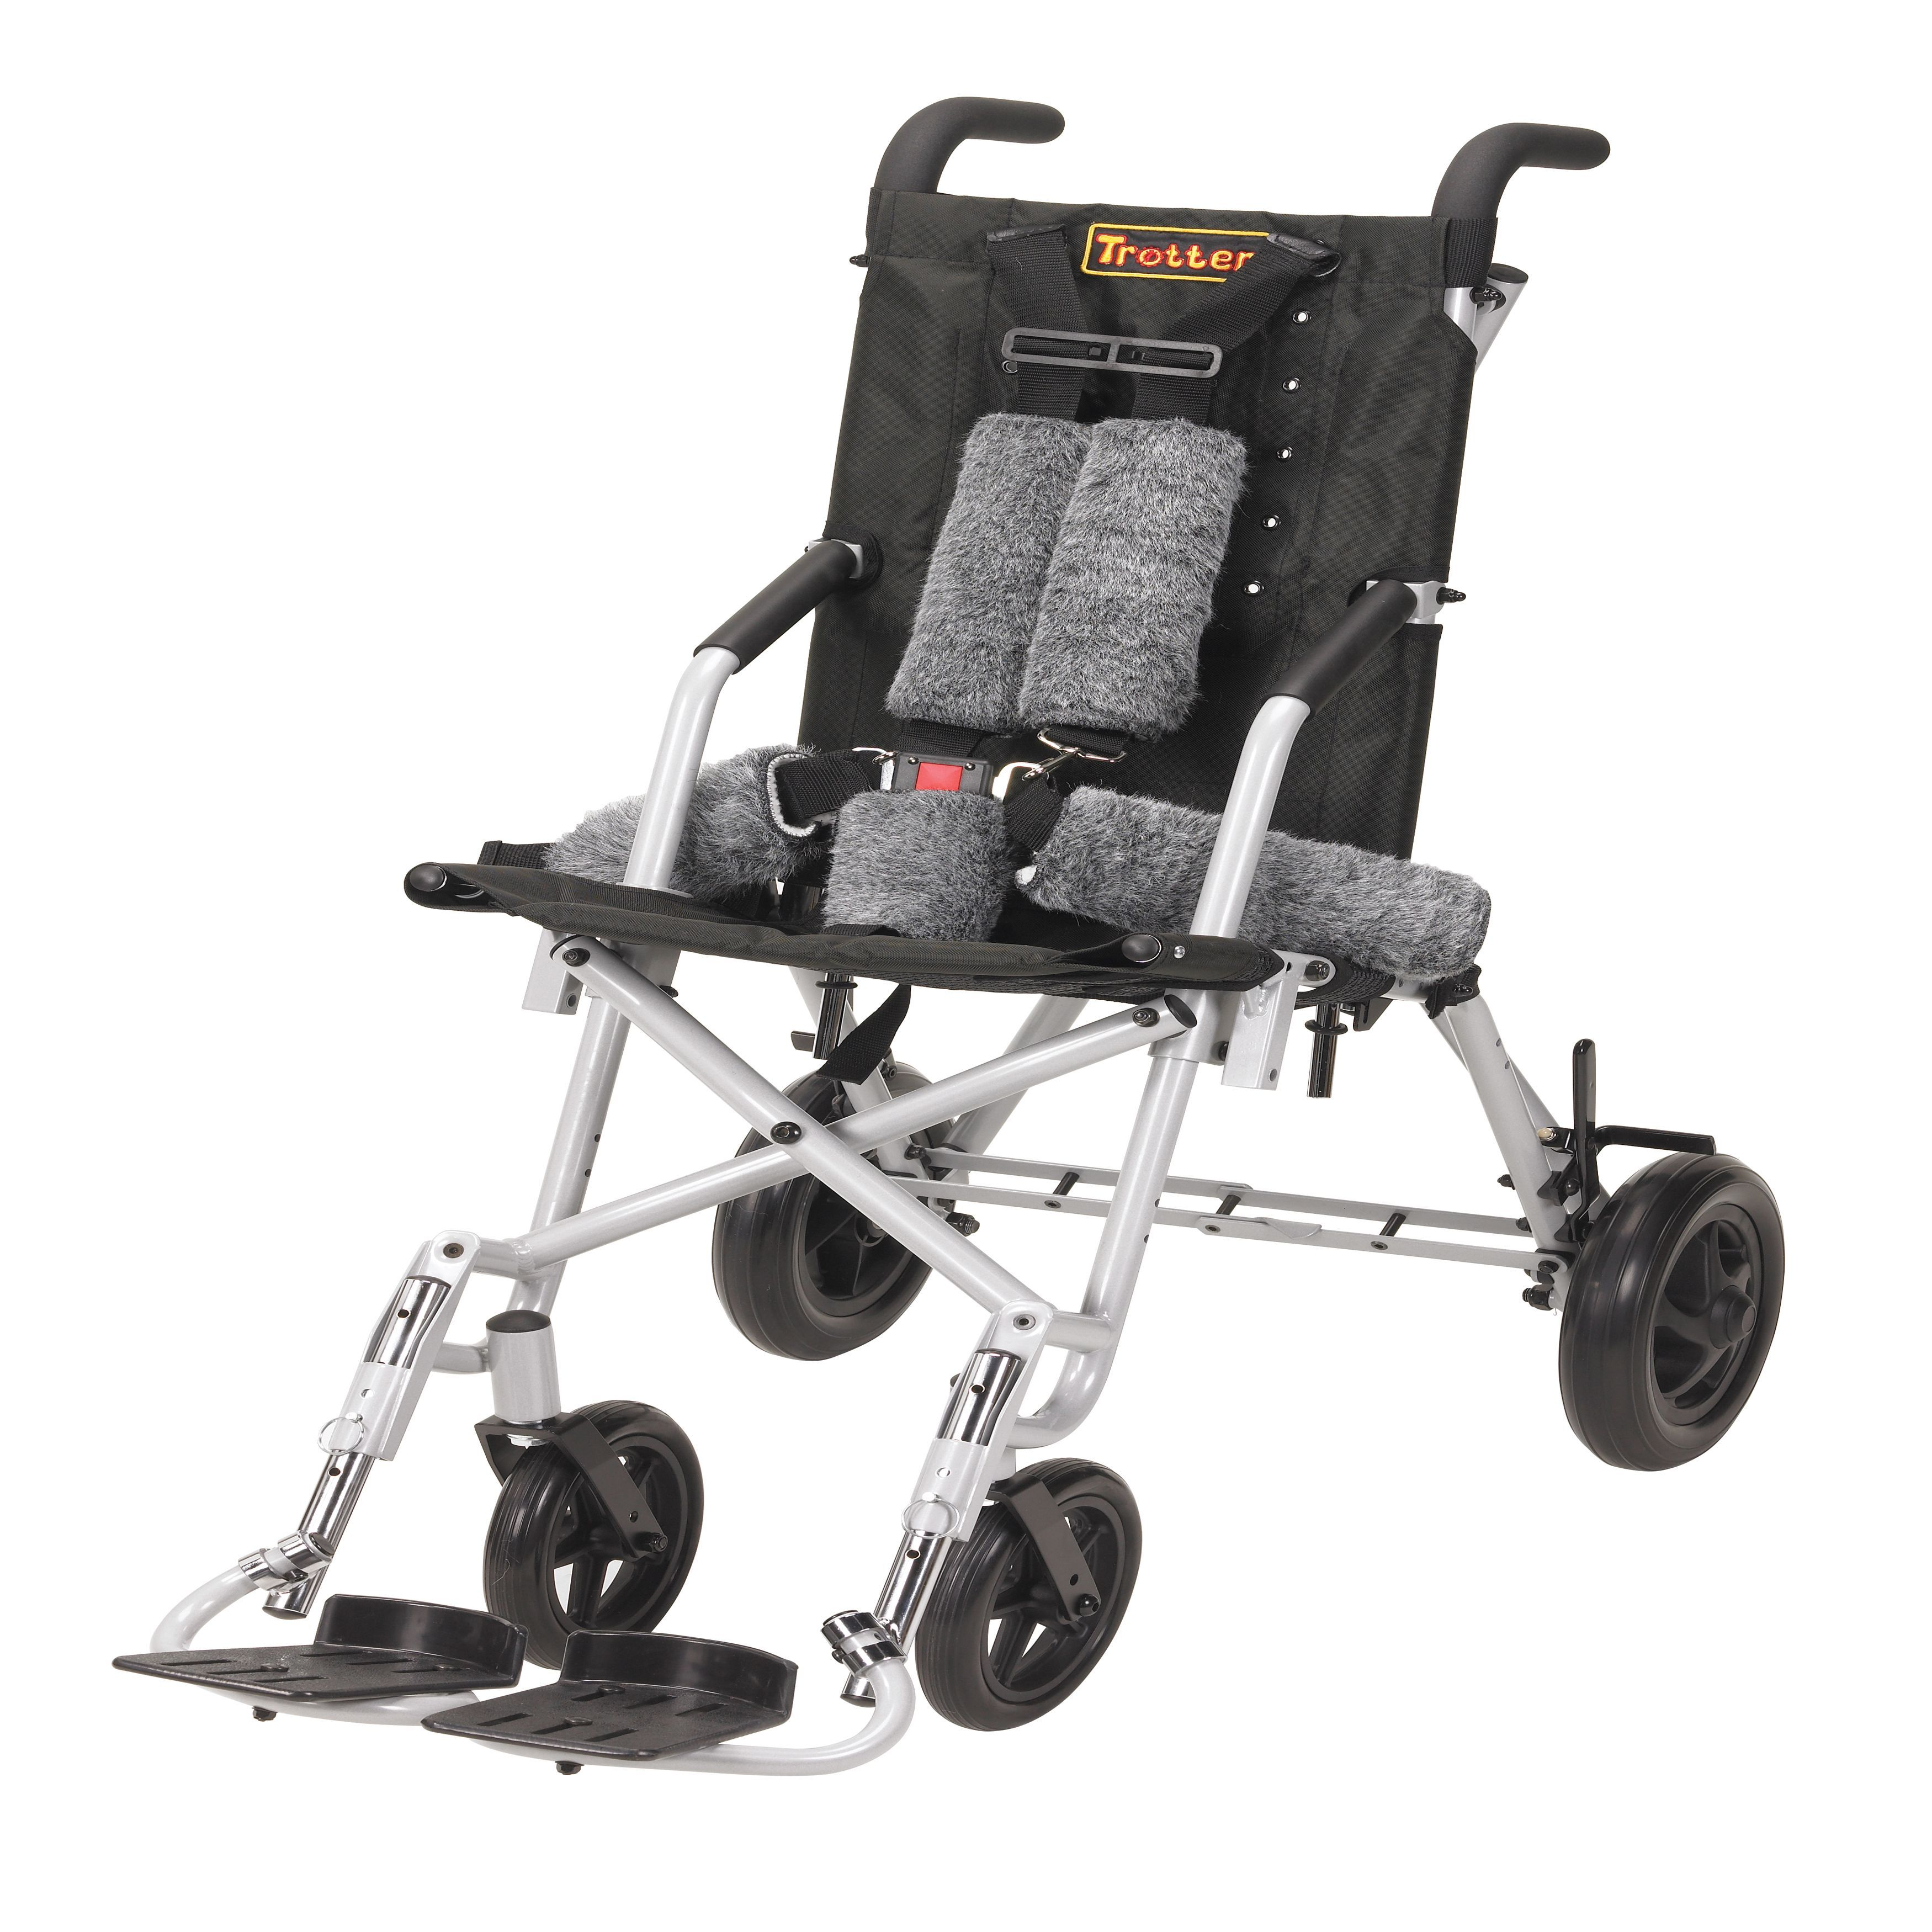 Peachy Wenzelite Rehab Trotter Convaid Style Mobility Rehab Ncnpc Chair Design For Home Ncnpcorg